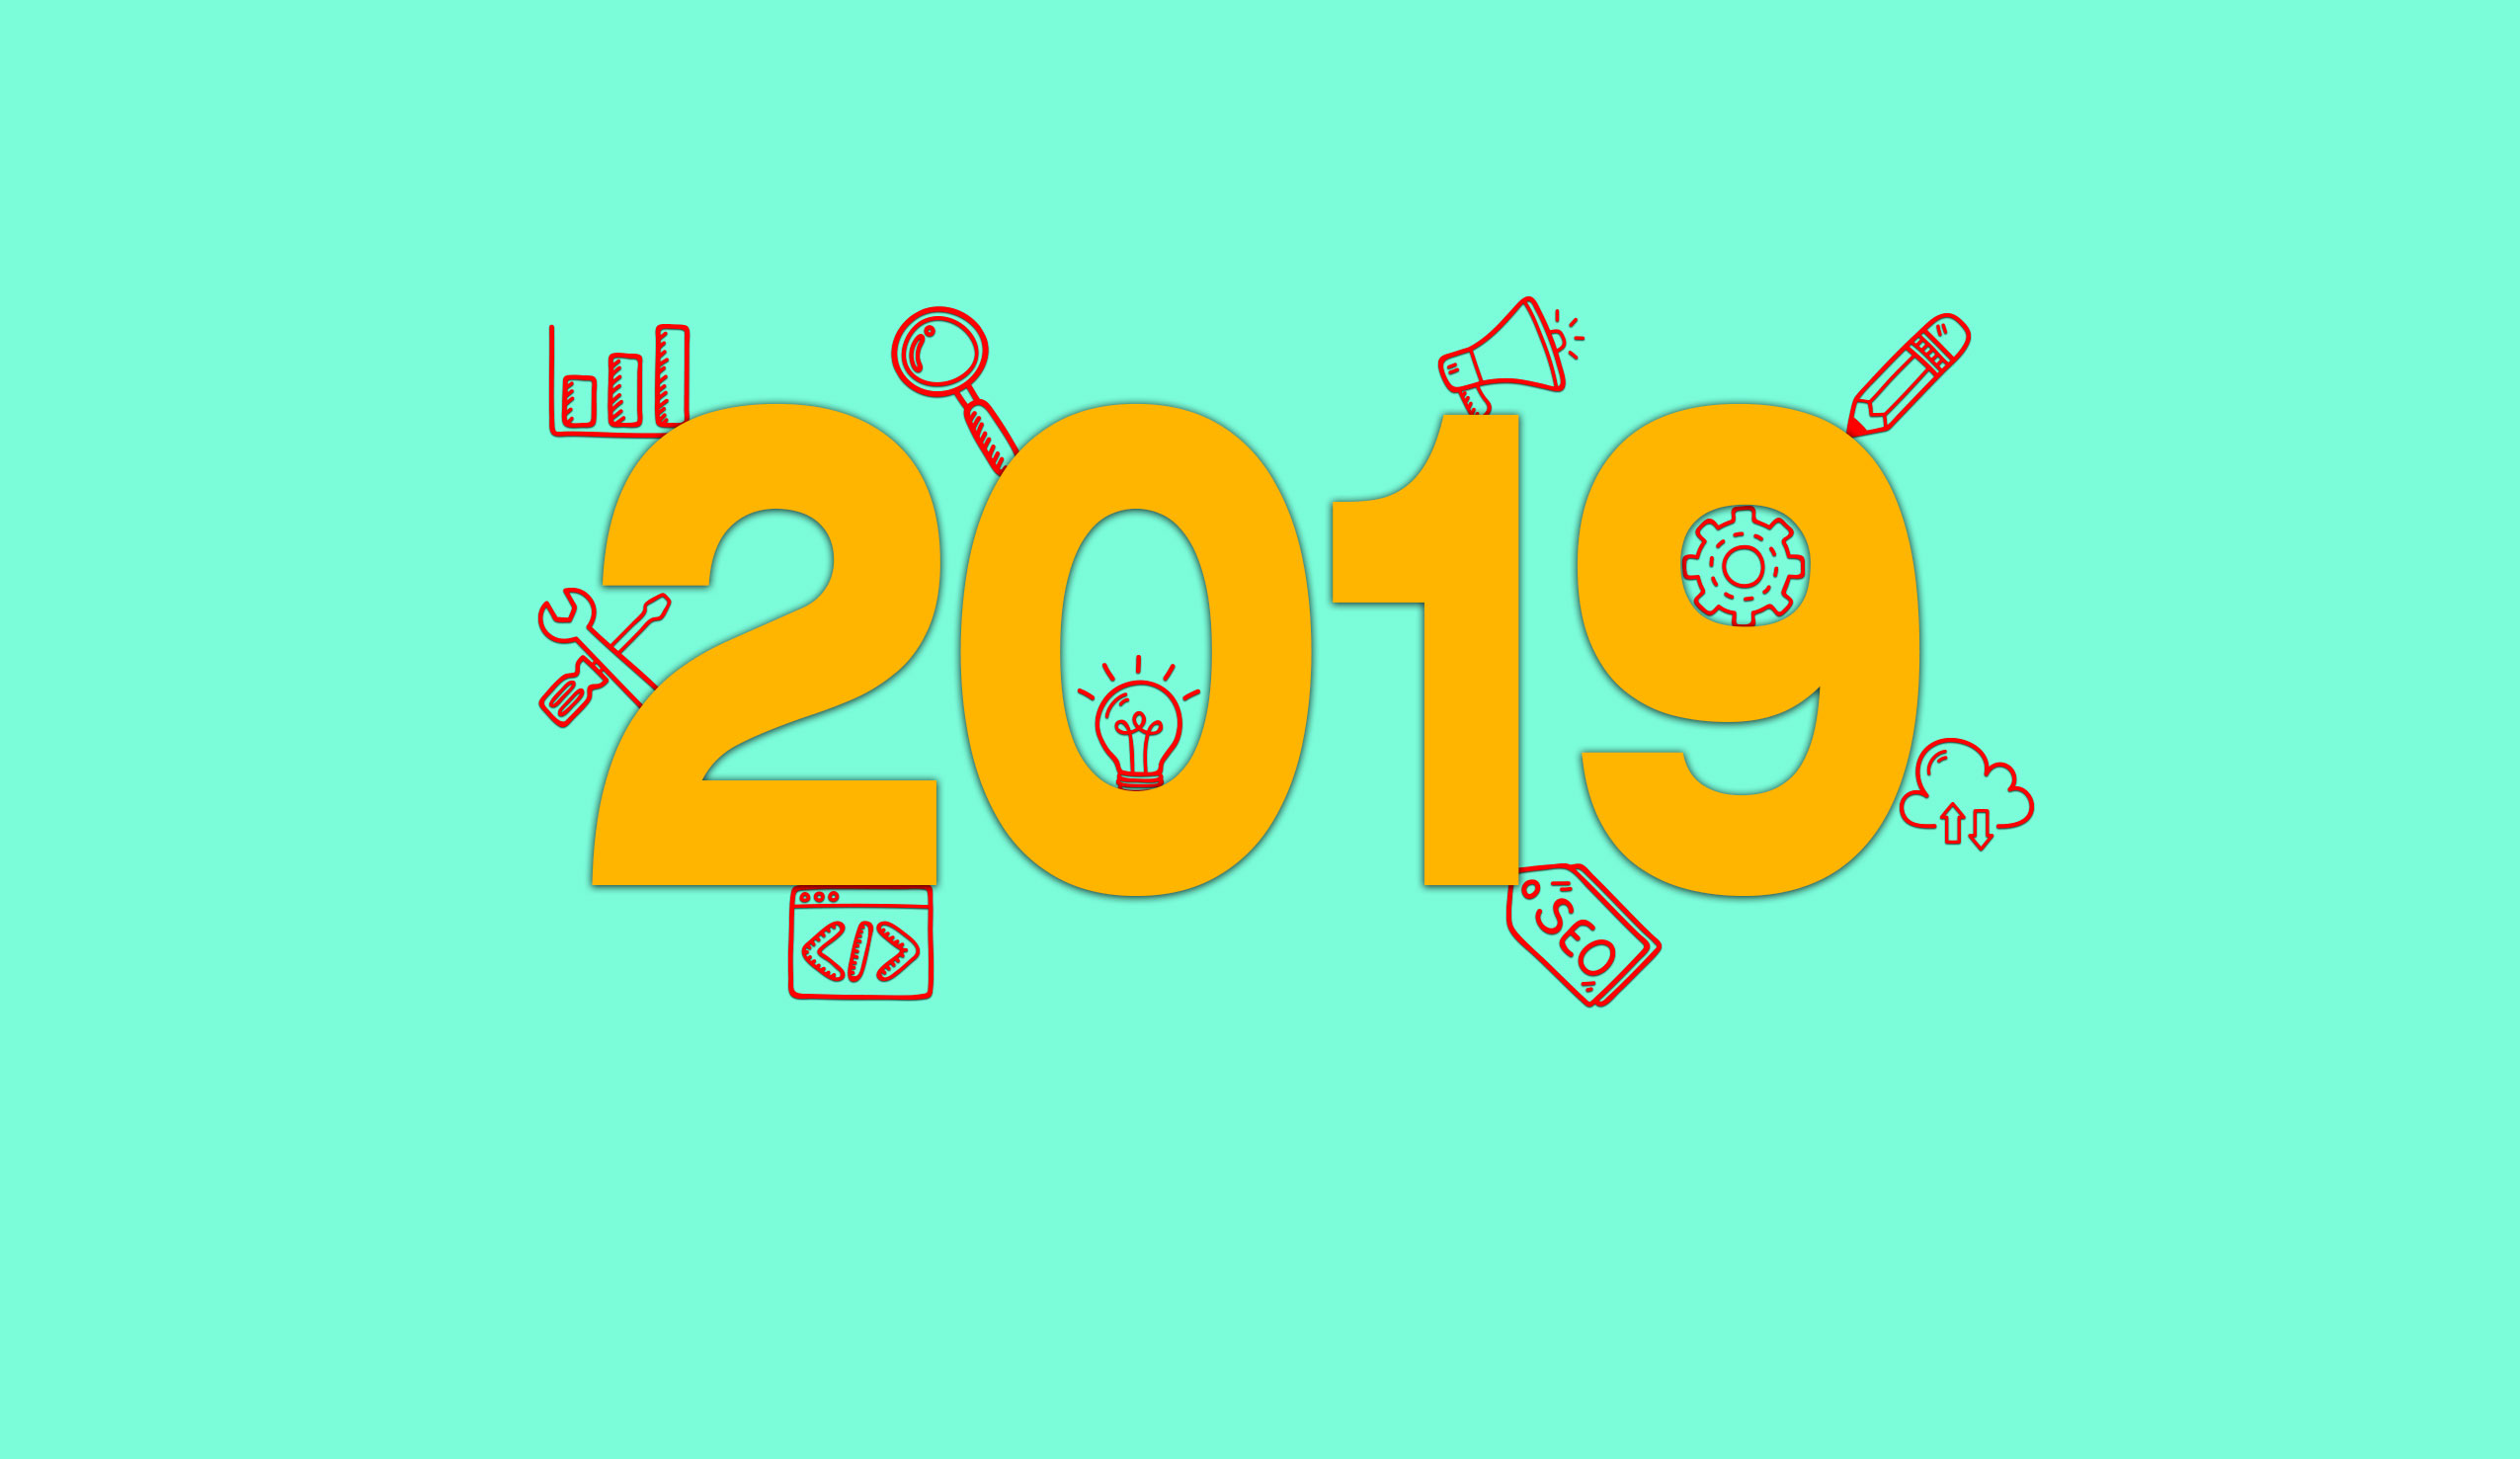 Quattro tendenze di marketing per fare la differenza nel 2019